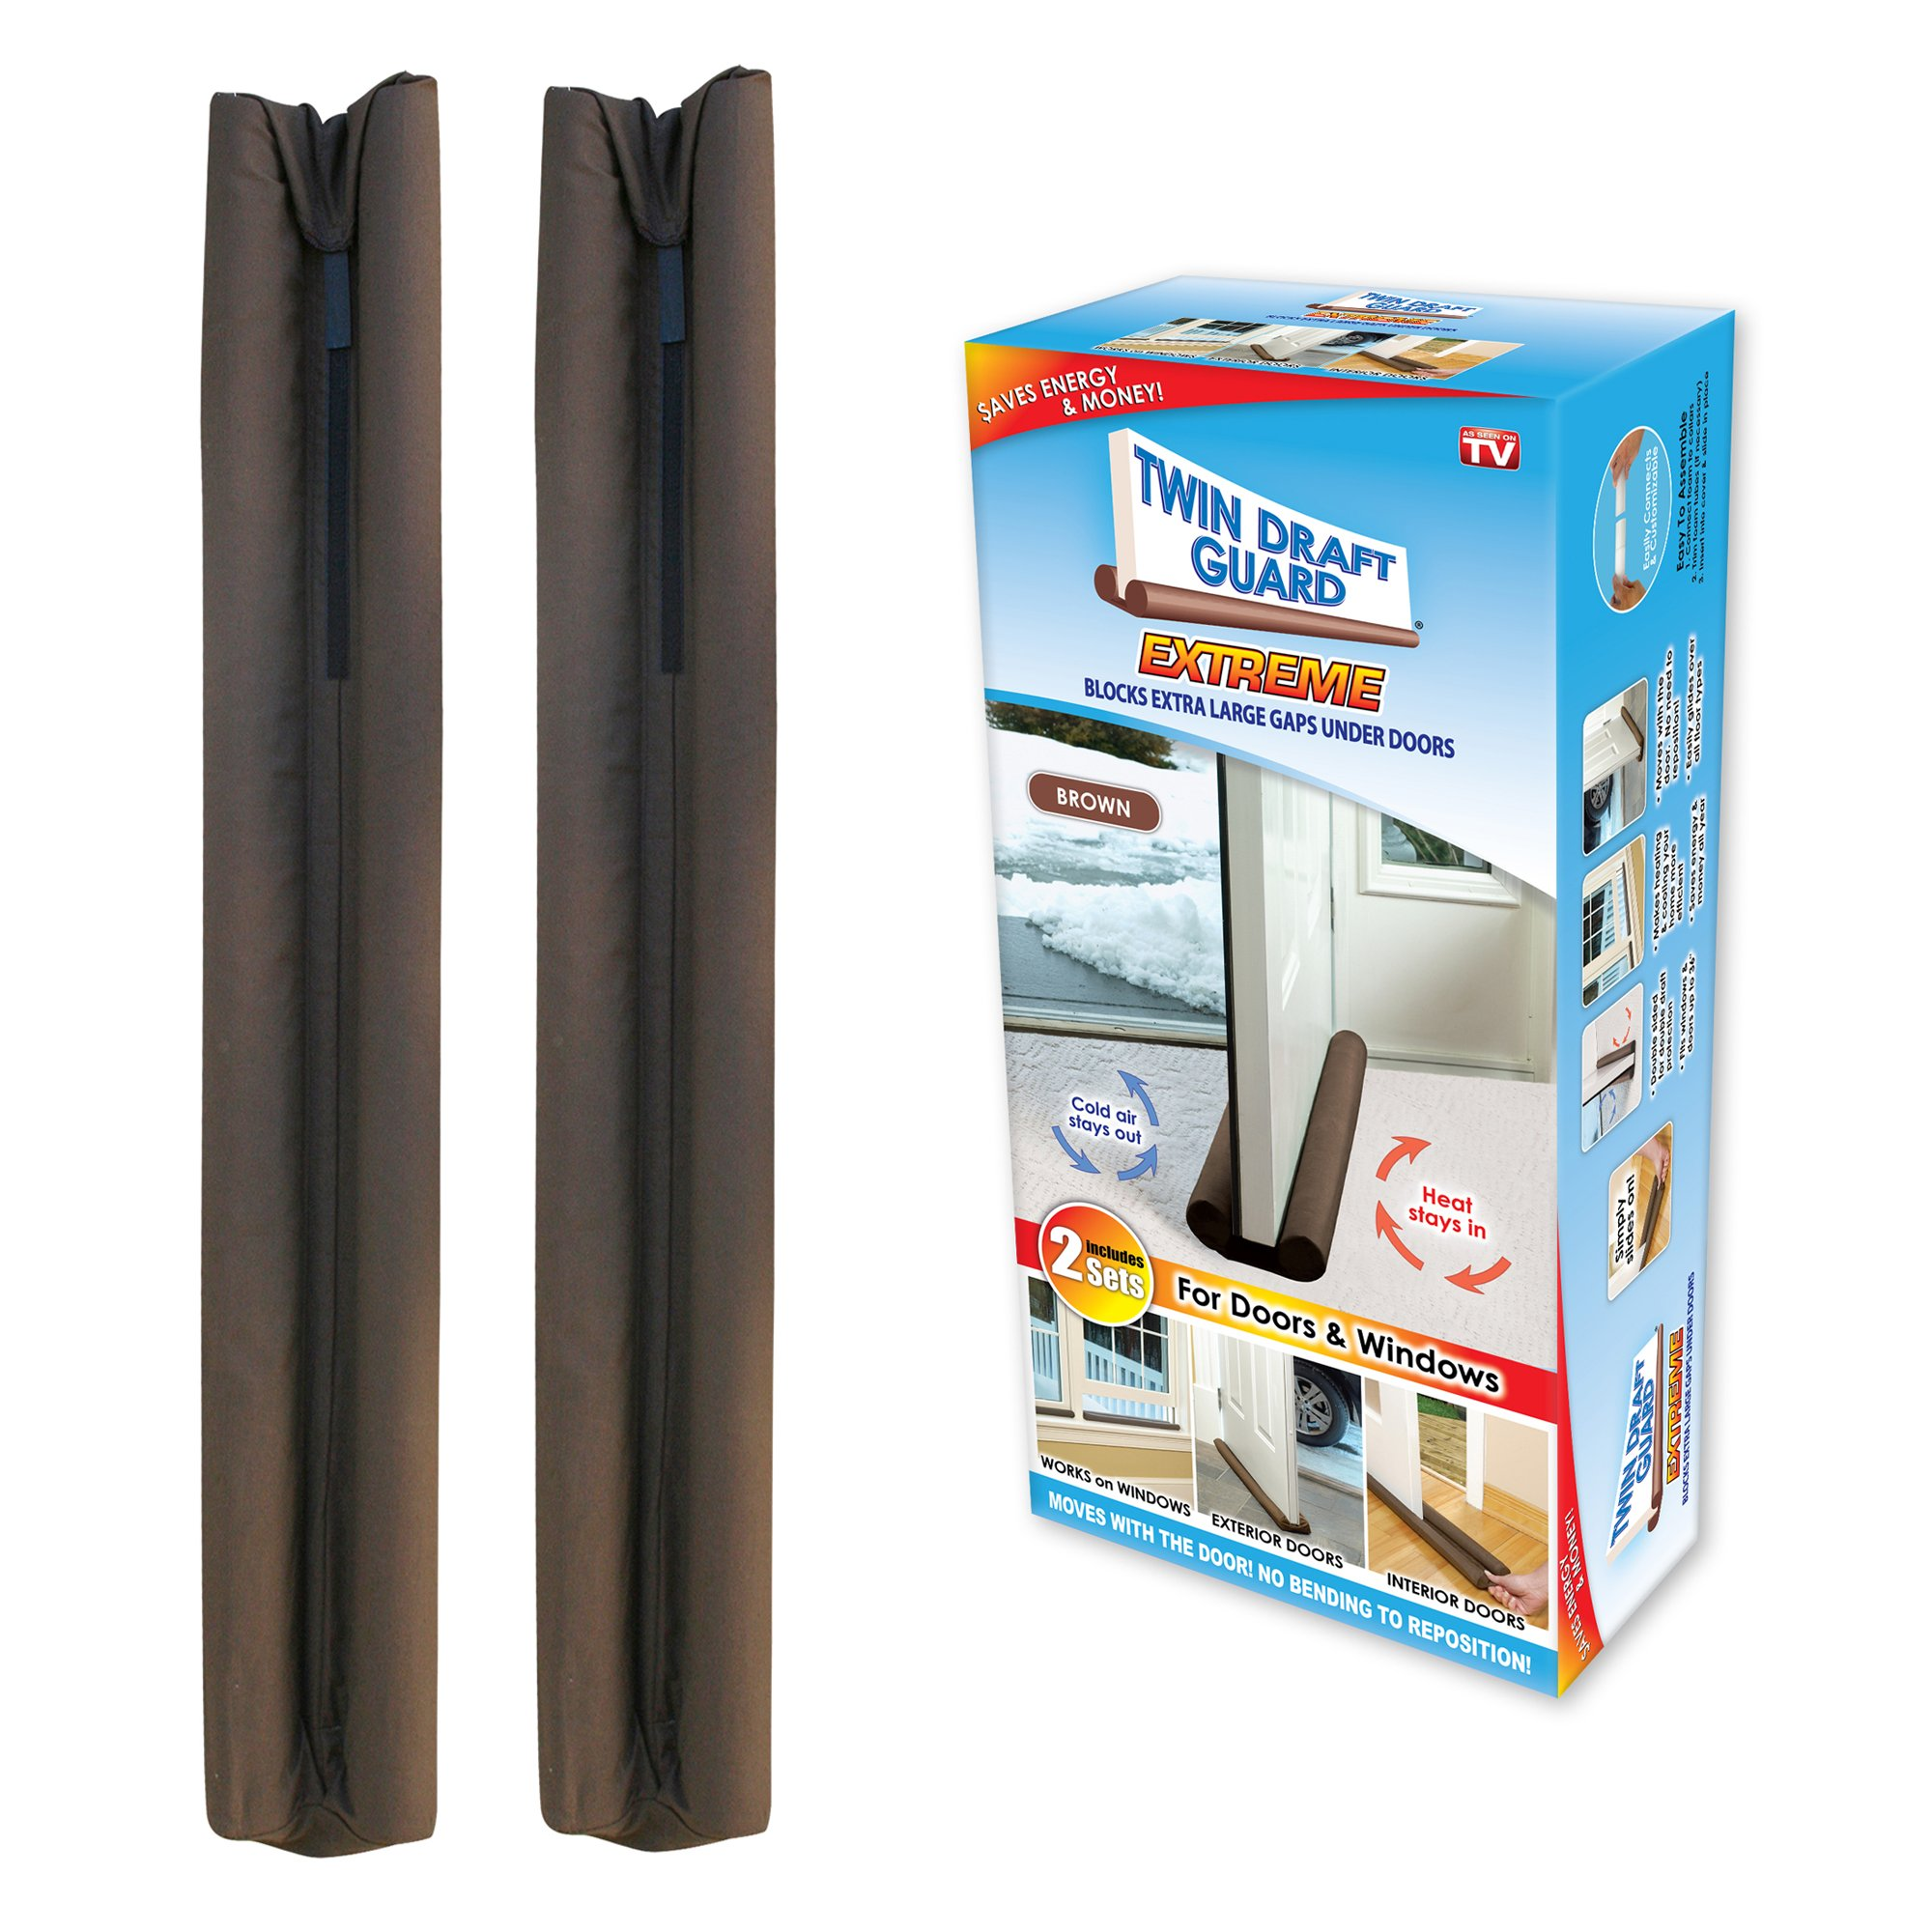 Twin Draft Guard Extreme in Brown - Set of 2 - Energy Saving Under Door Draft Stopper by Twin Draft Guard